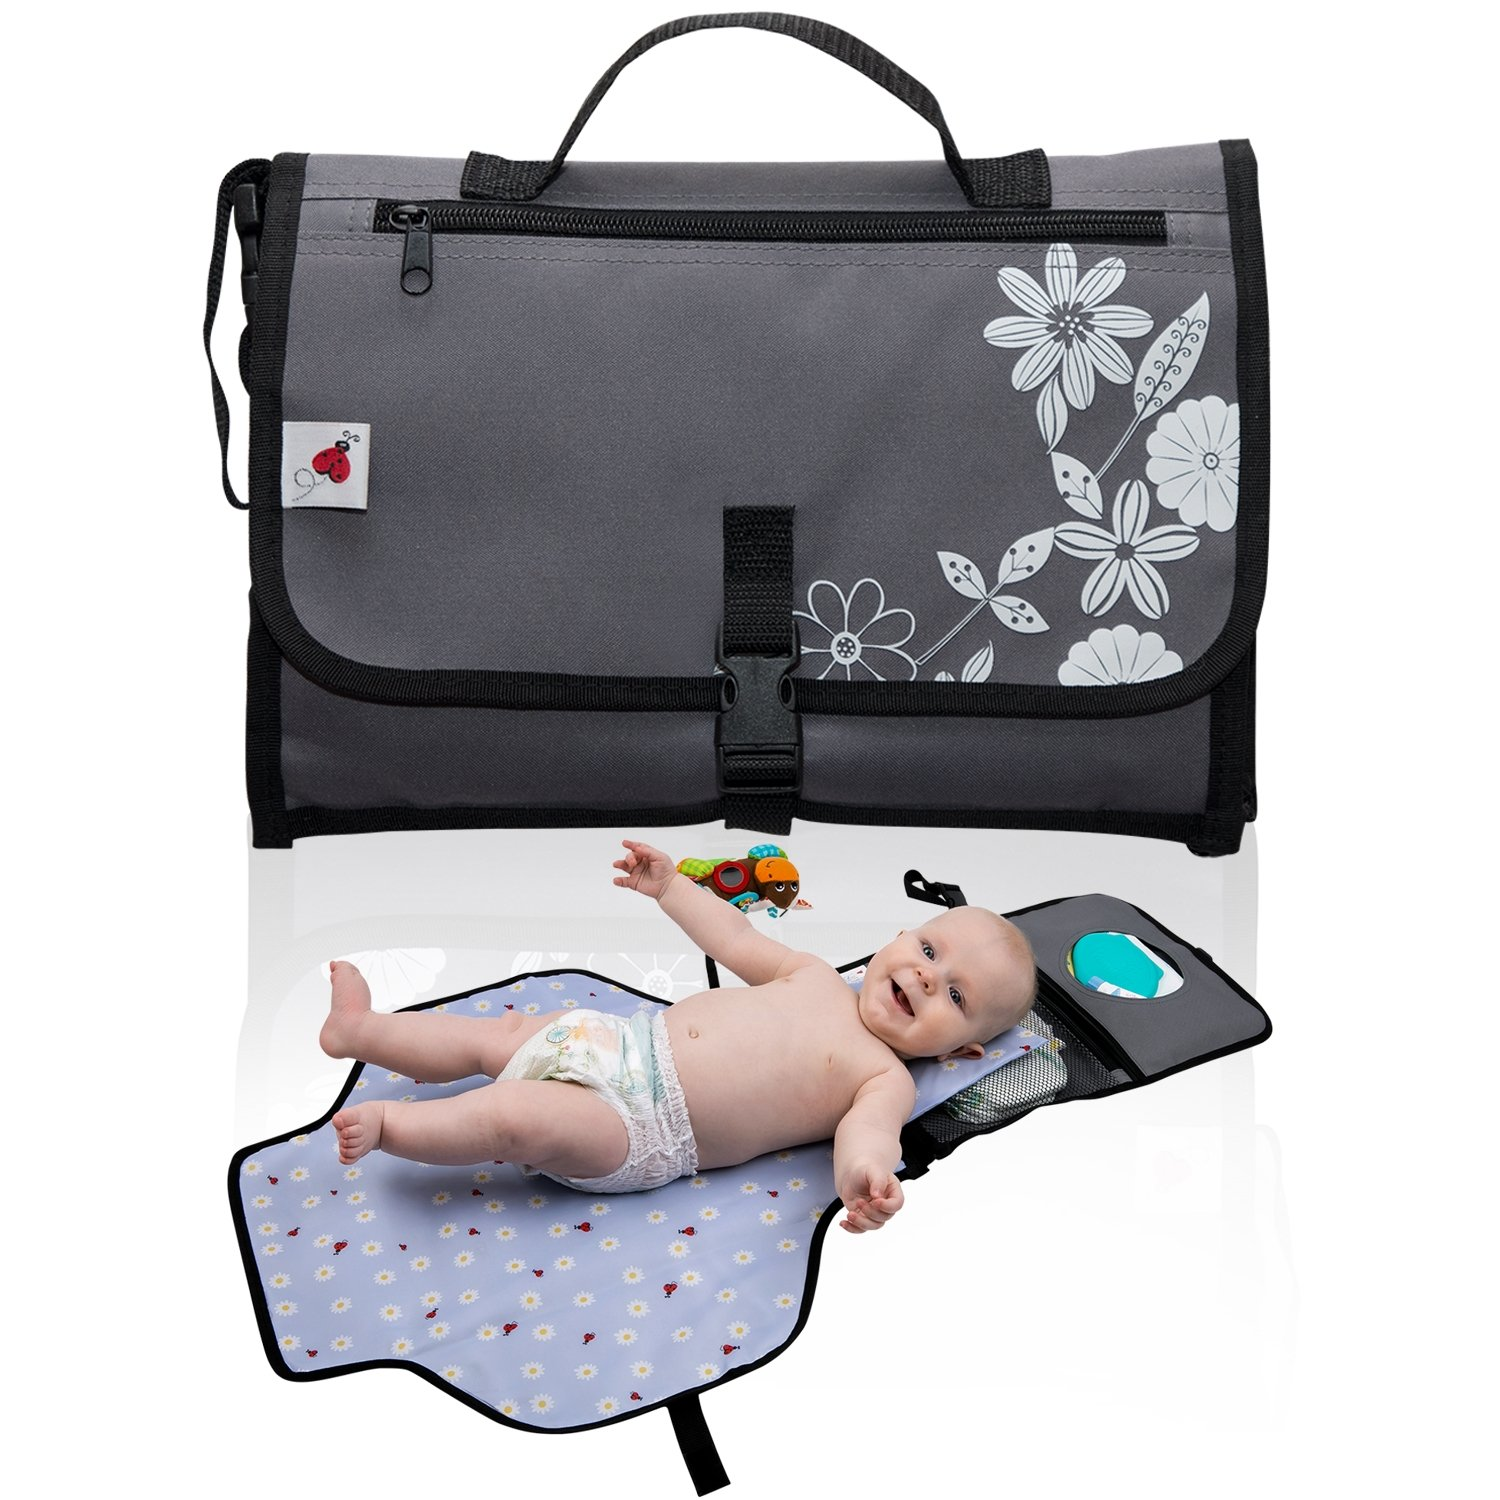 Portable Changing Pad Station Mat Baby Diaper Changing Clutch by Tibuu